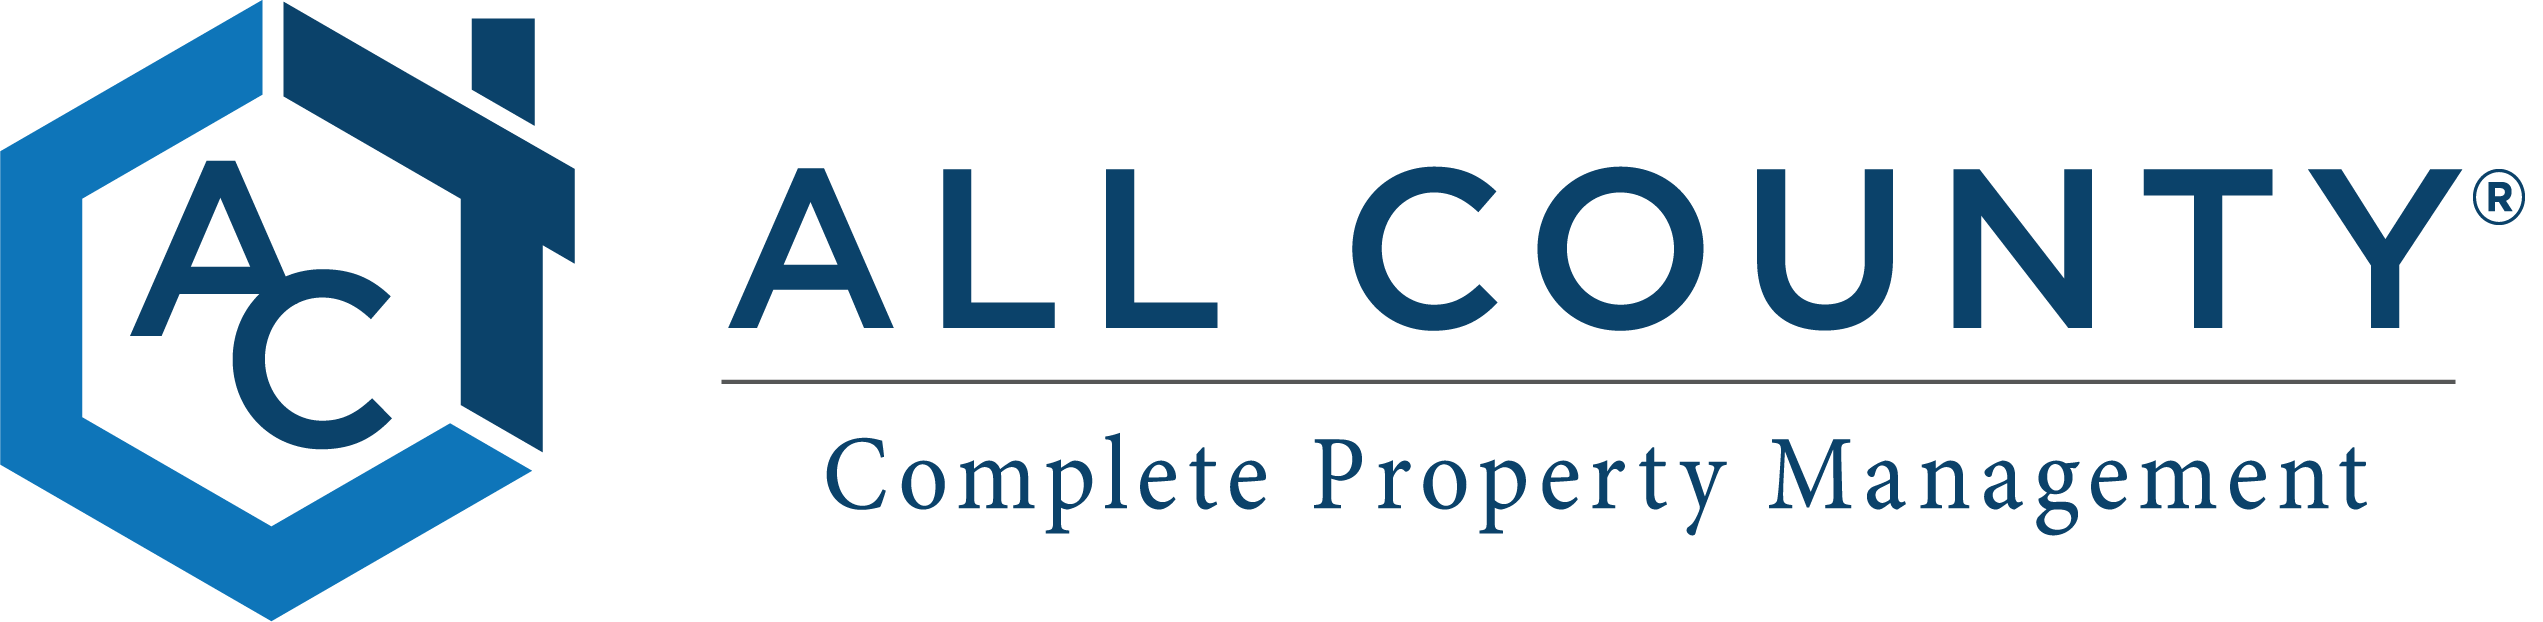 All County Complete Property Management